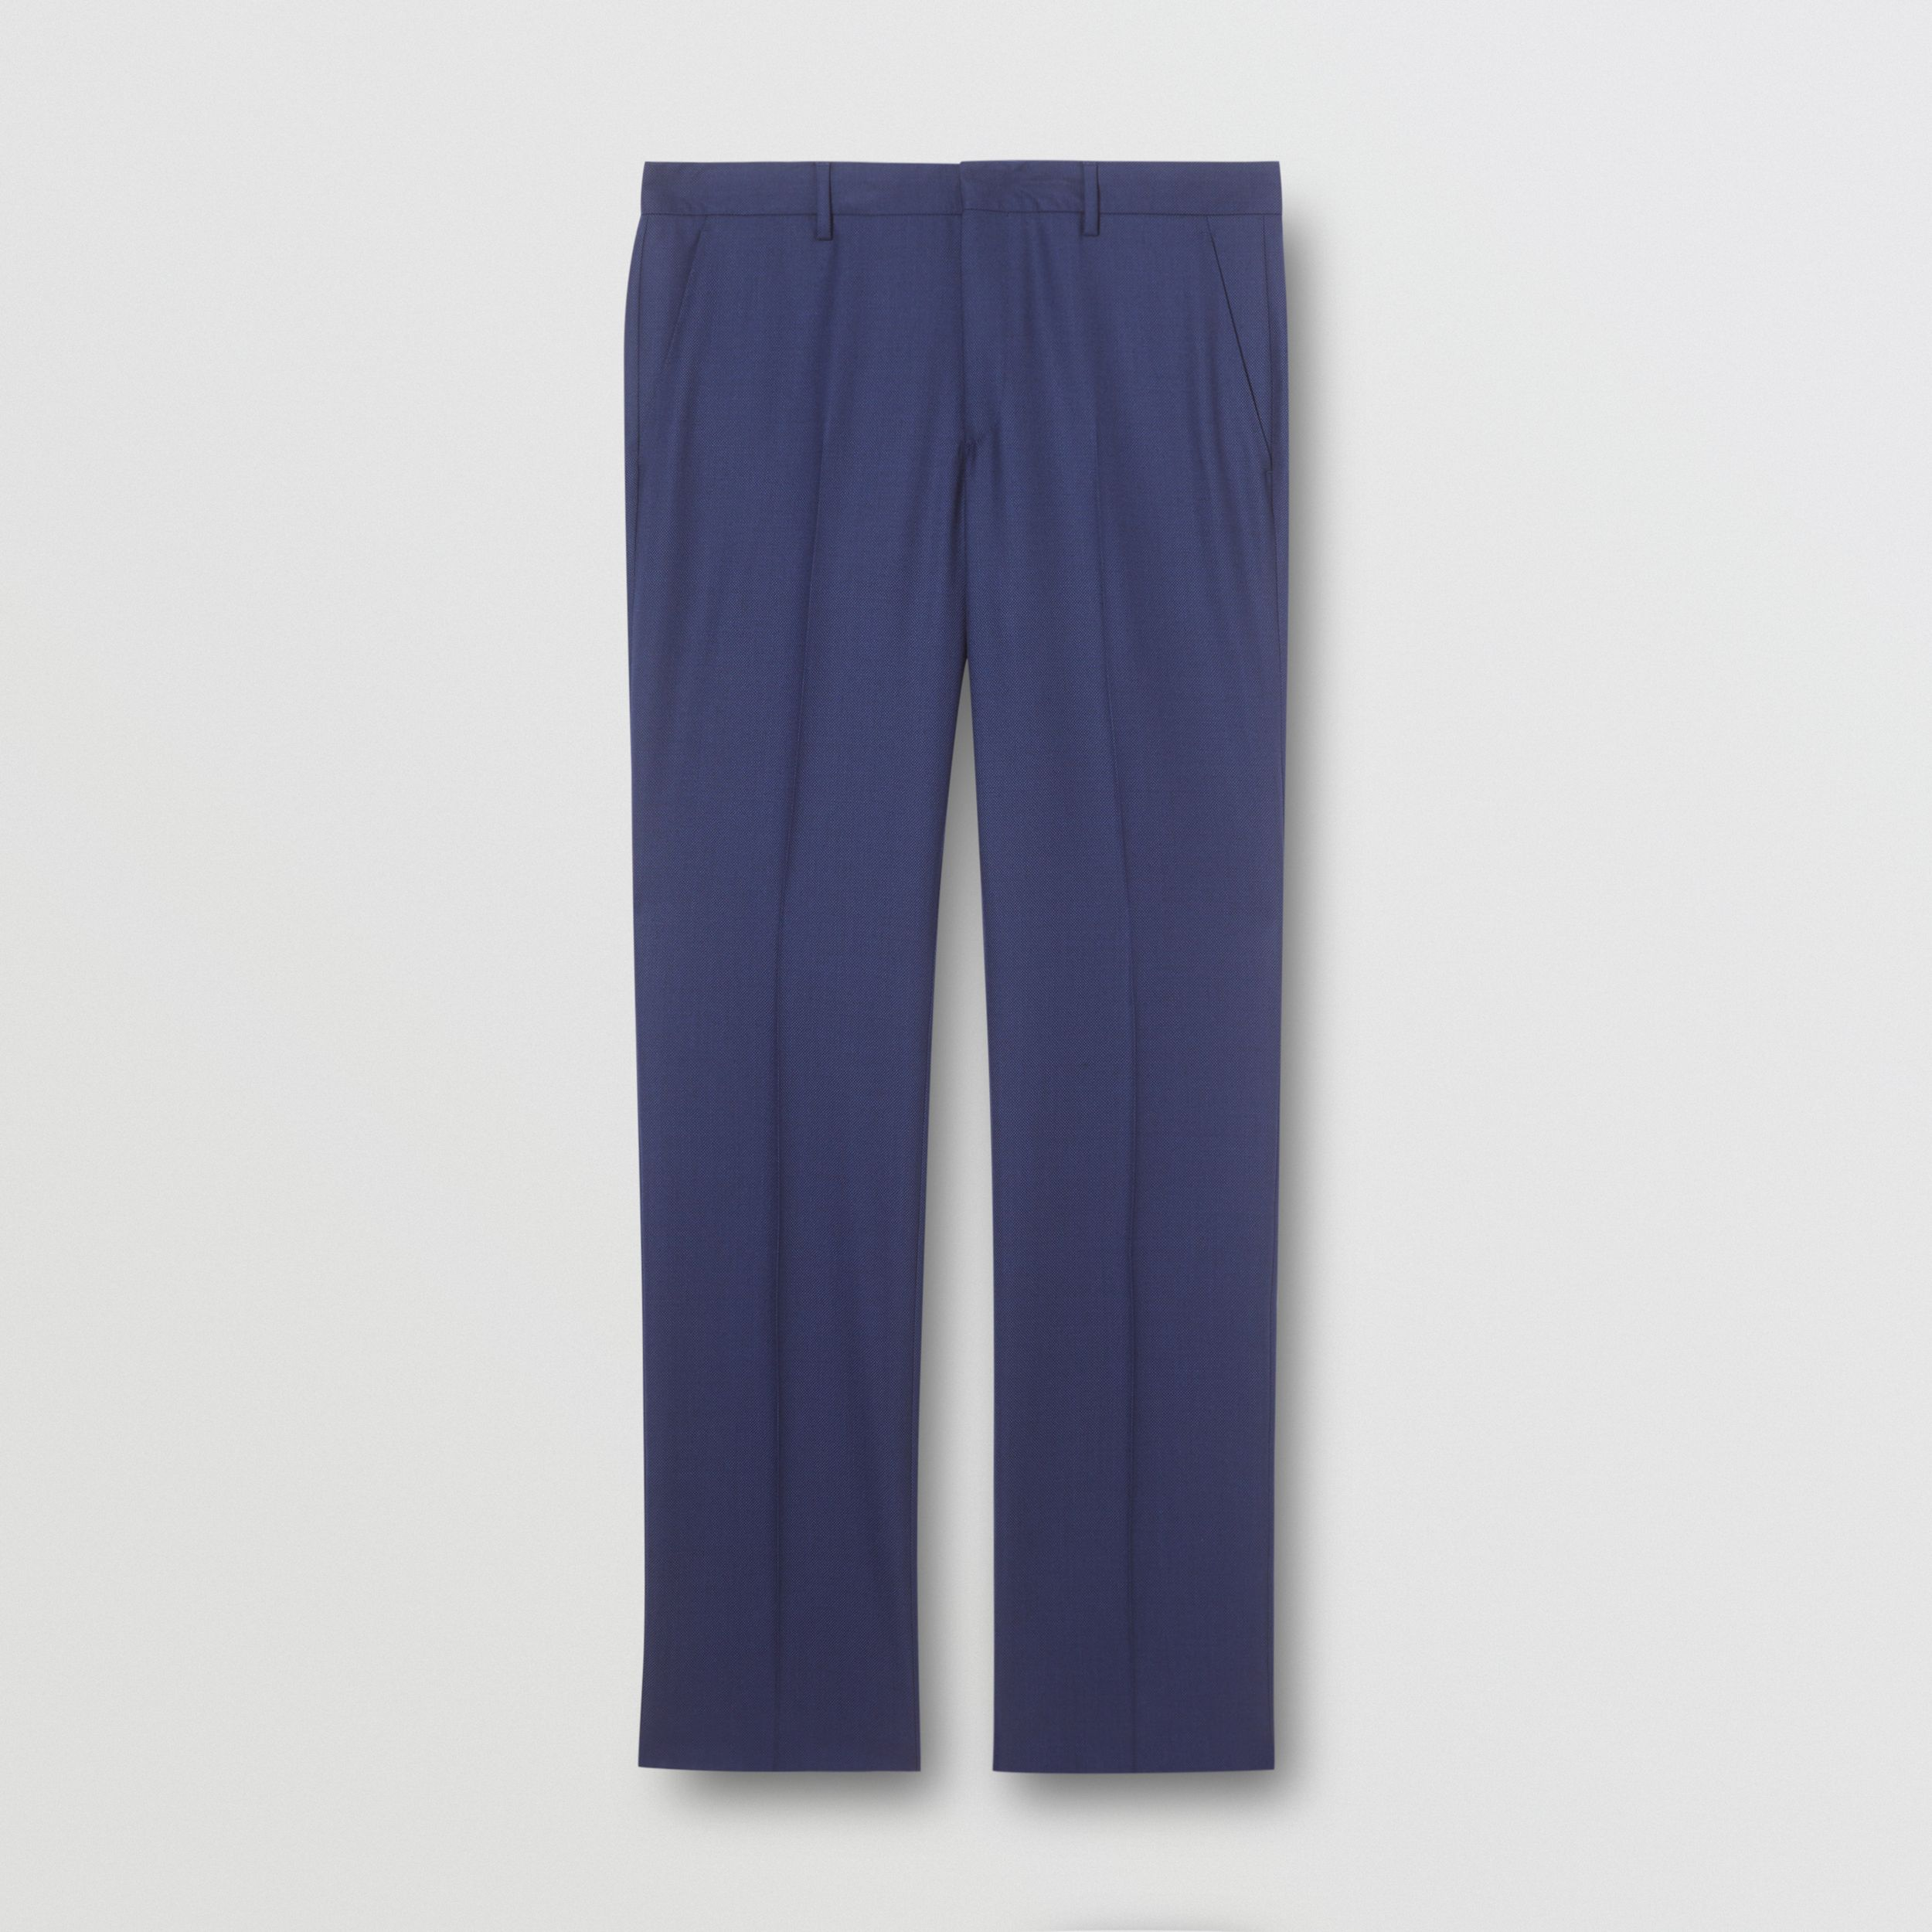 Classic Fit Birdseye Wool Tailored Trousers in Bright Navy - Men | Burberry Australia - 4